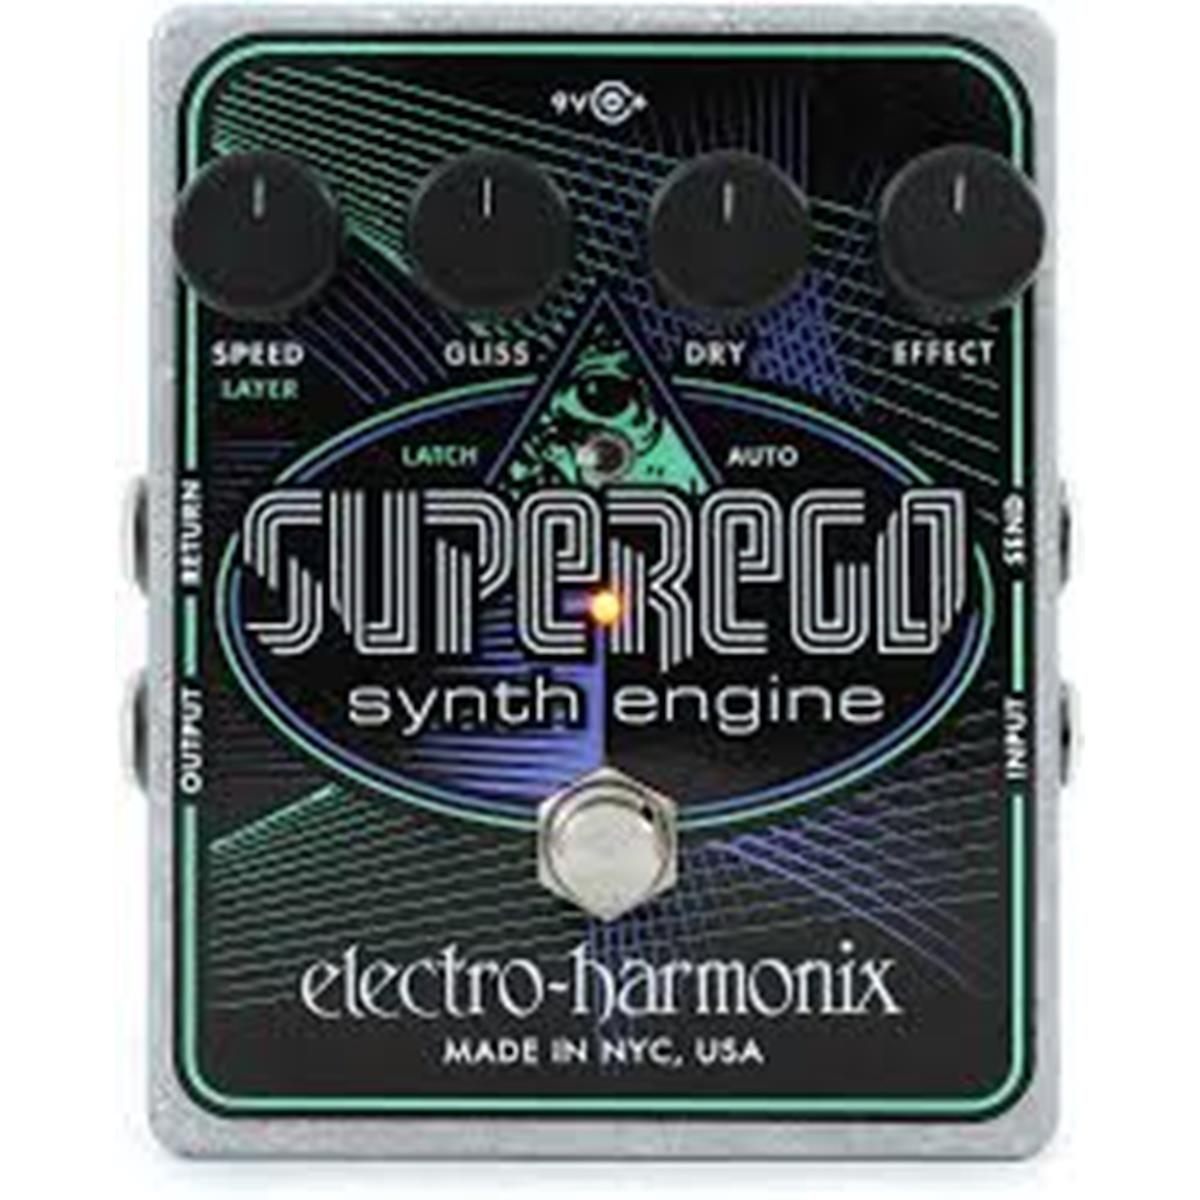 ELECTRO-HARMONIX-SUPEREGO-Synth-engine-from-Moog-to-EMS-9-6DC-200-PSU-included-sku-41253198